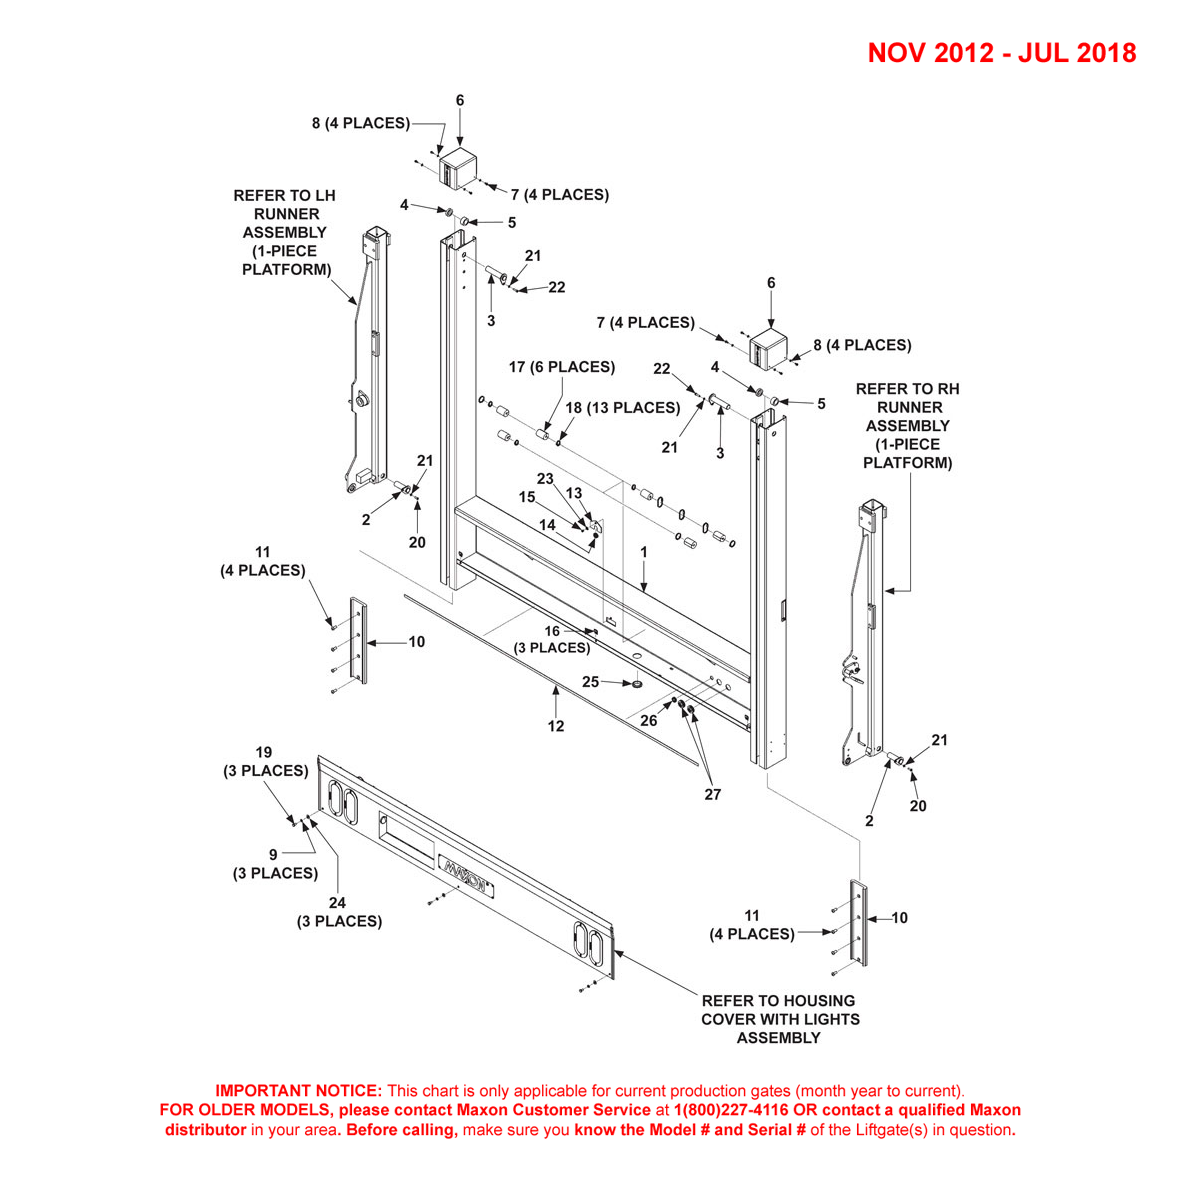 DMD (Nov 2012 - Jul 2018) 1-Piece Platform Main Assembly Diagram